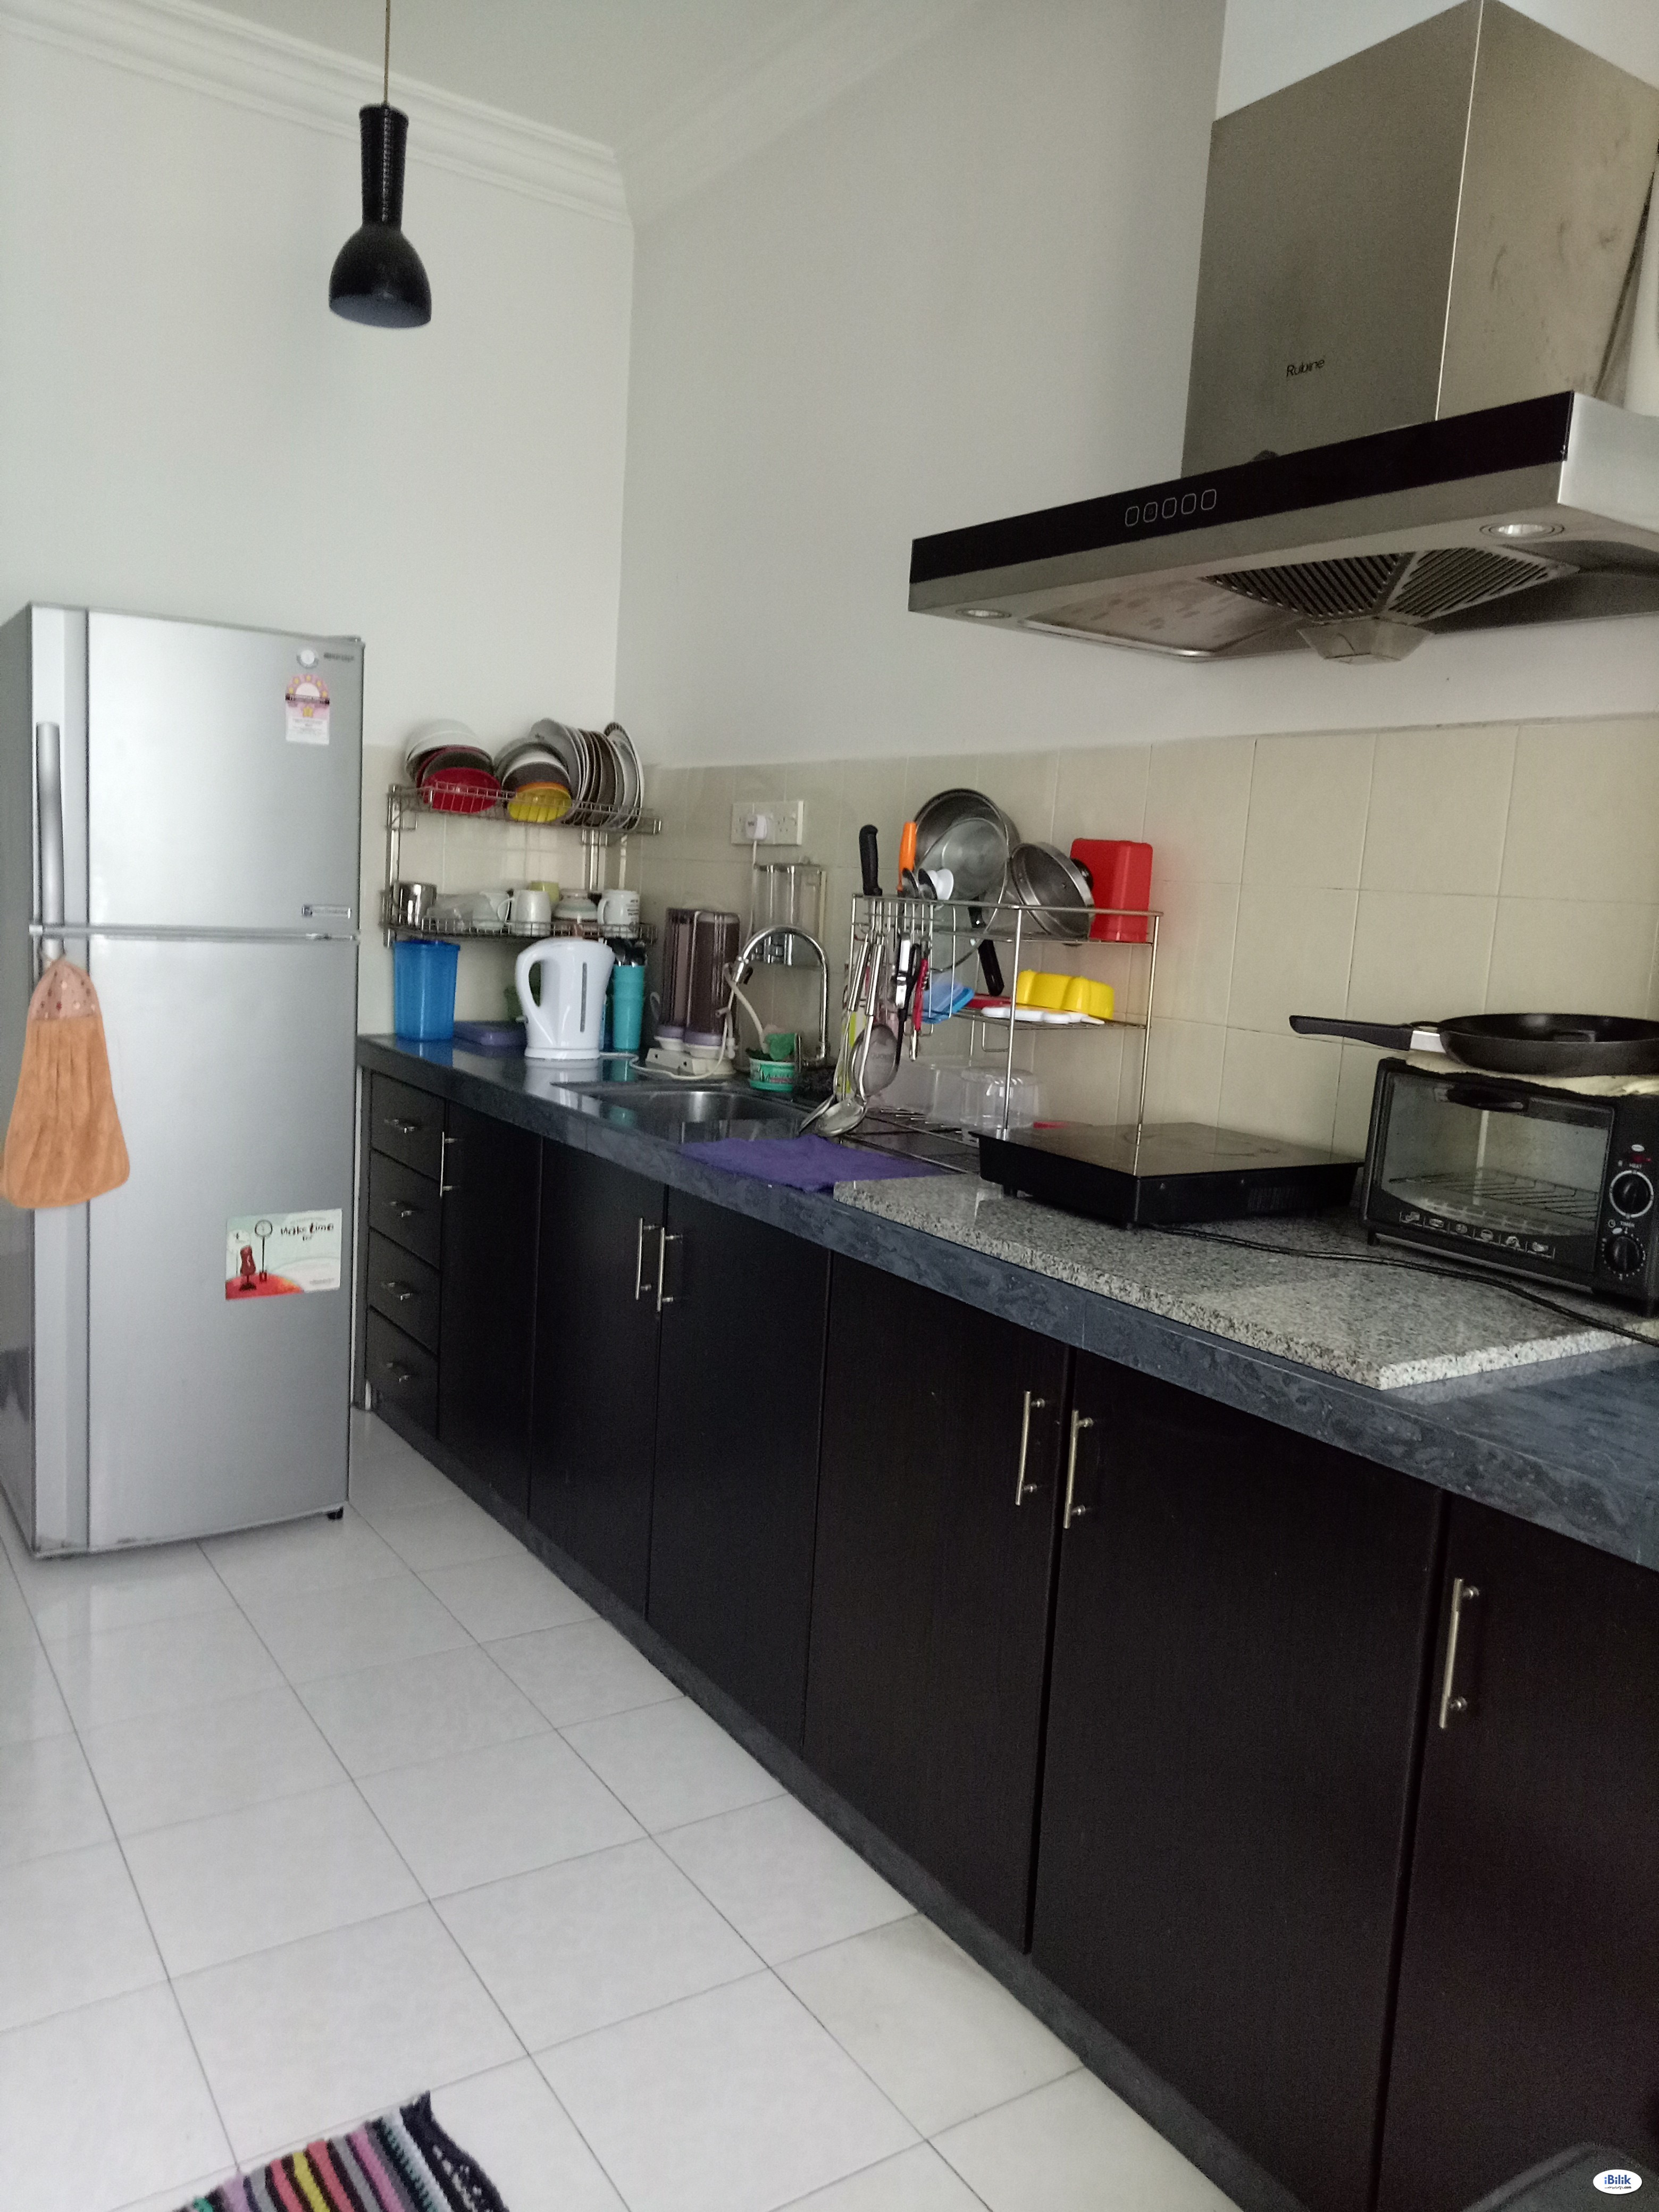 Middle Room at Park View Tower, Butterworth